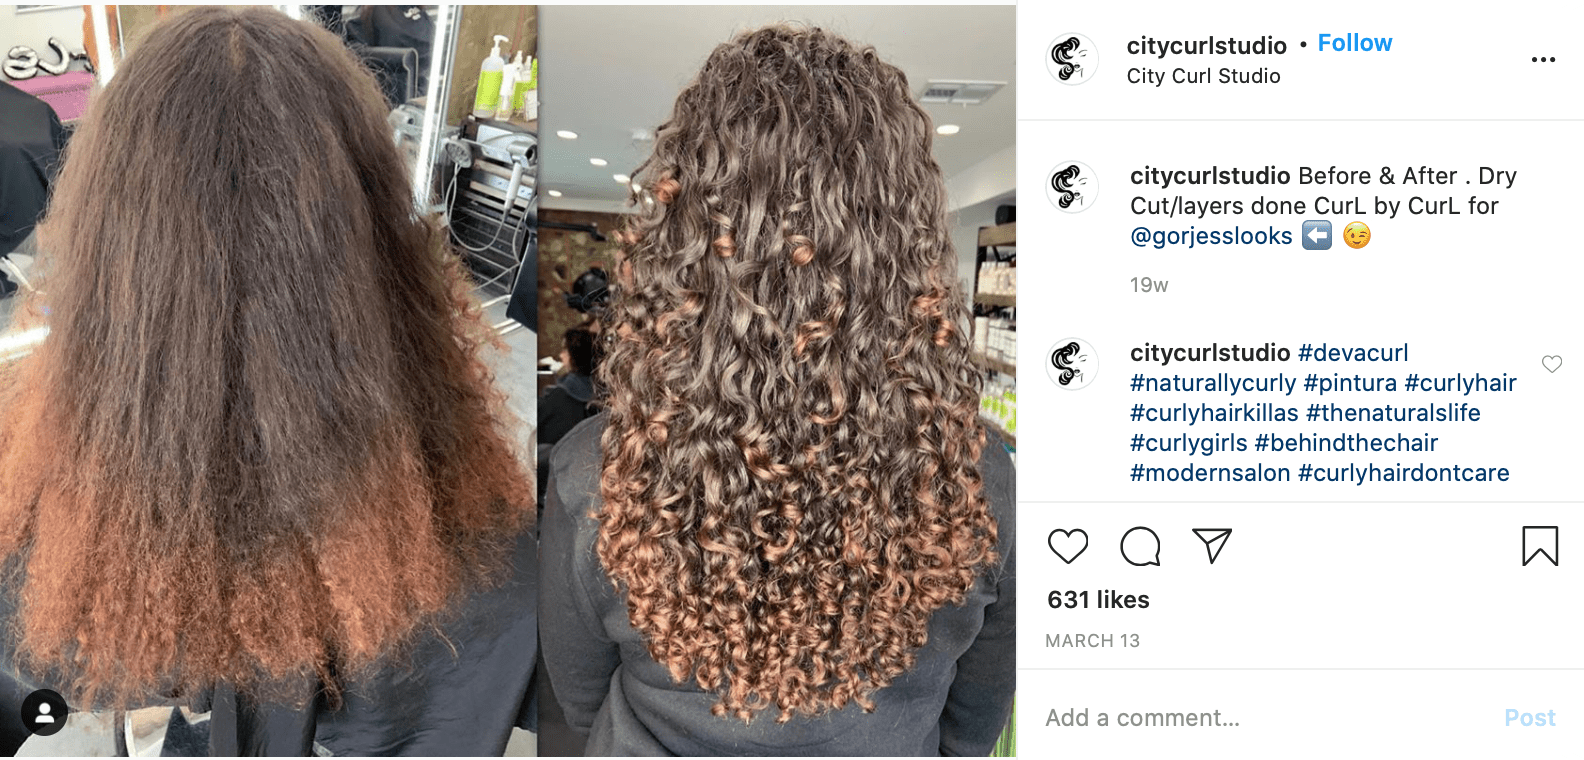 Hair Salon Instagram Accounts